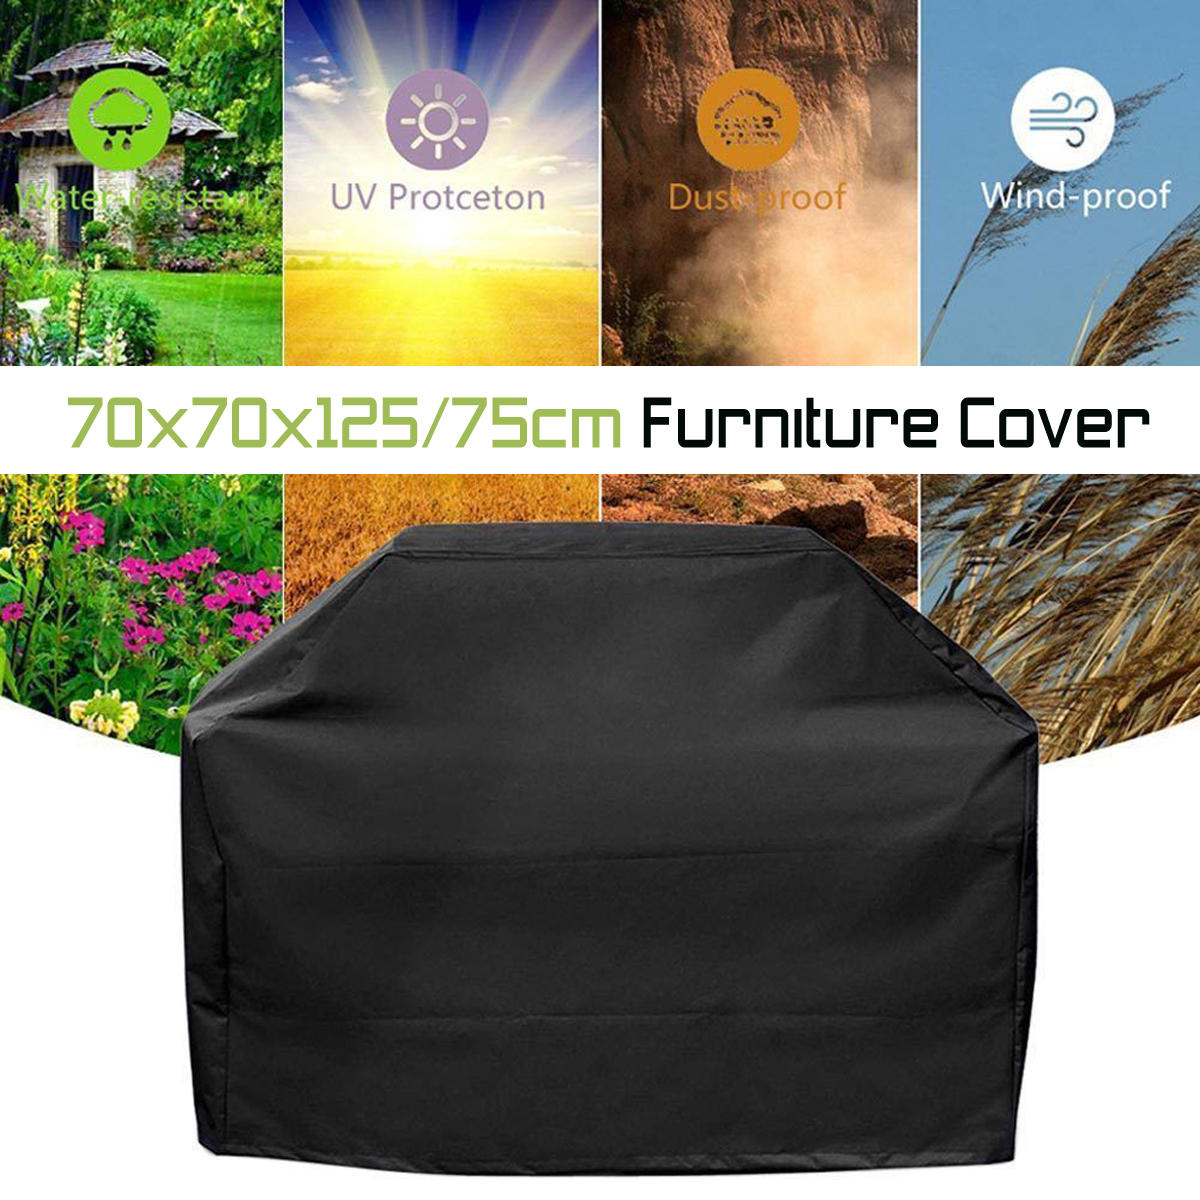 Waterproof High Back Chair Covers Furniture Protection Cover Outdoor Patio Garden Sale Banggood Com Arrival Notice